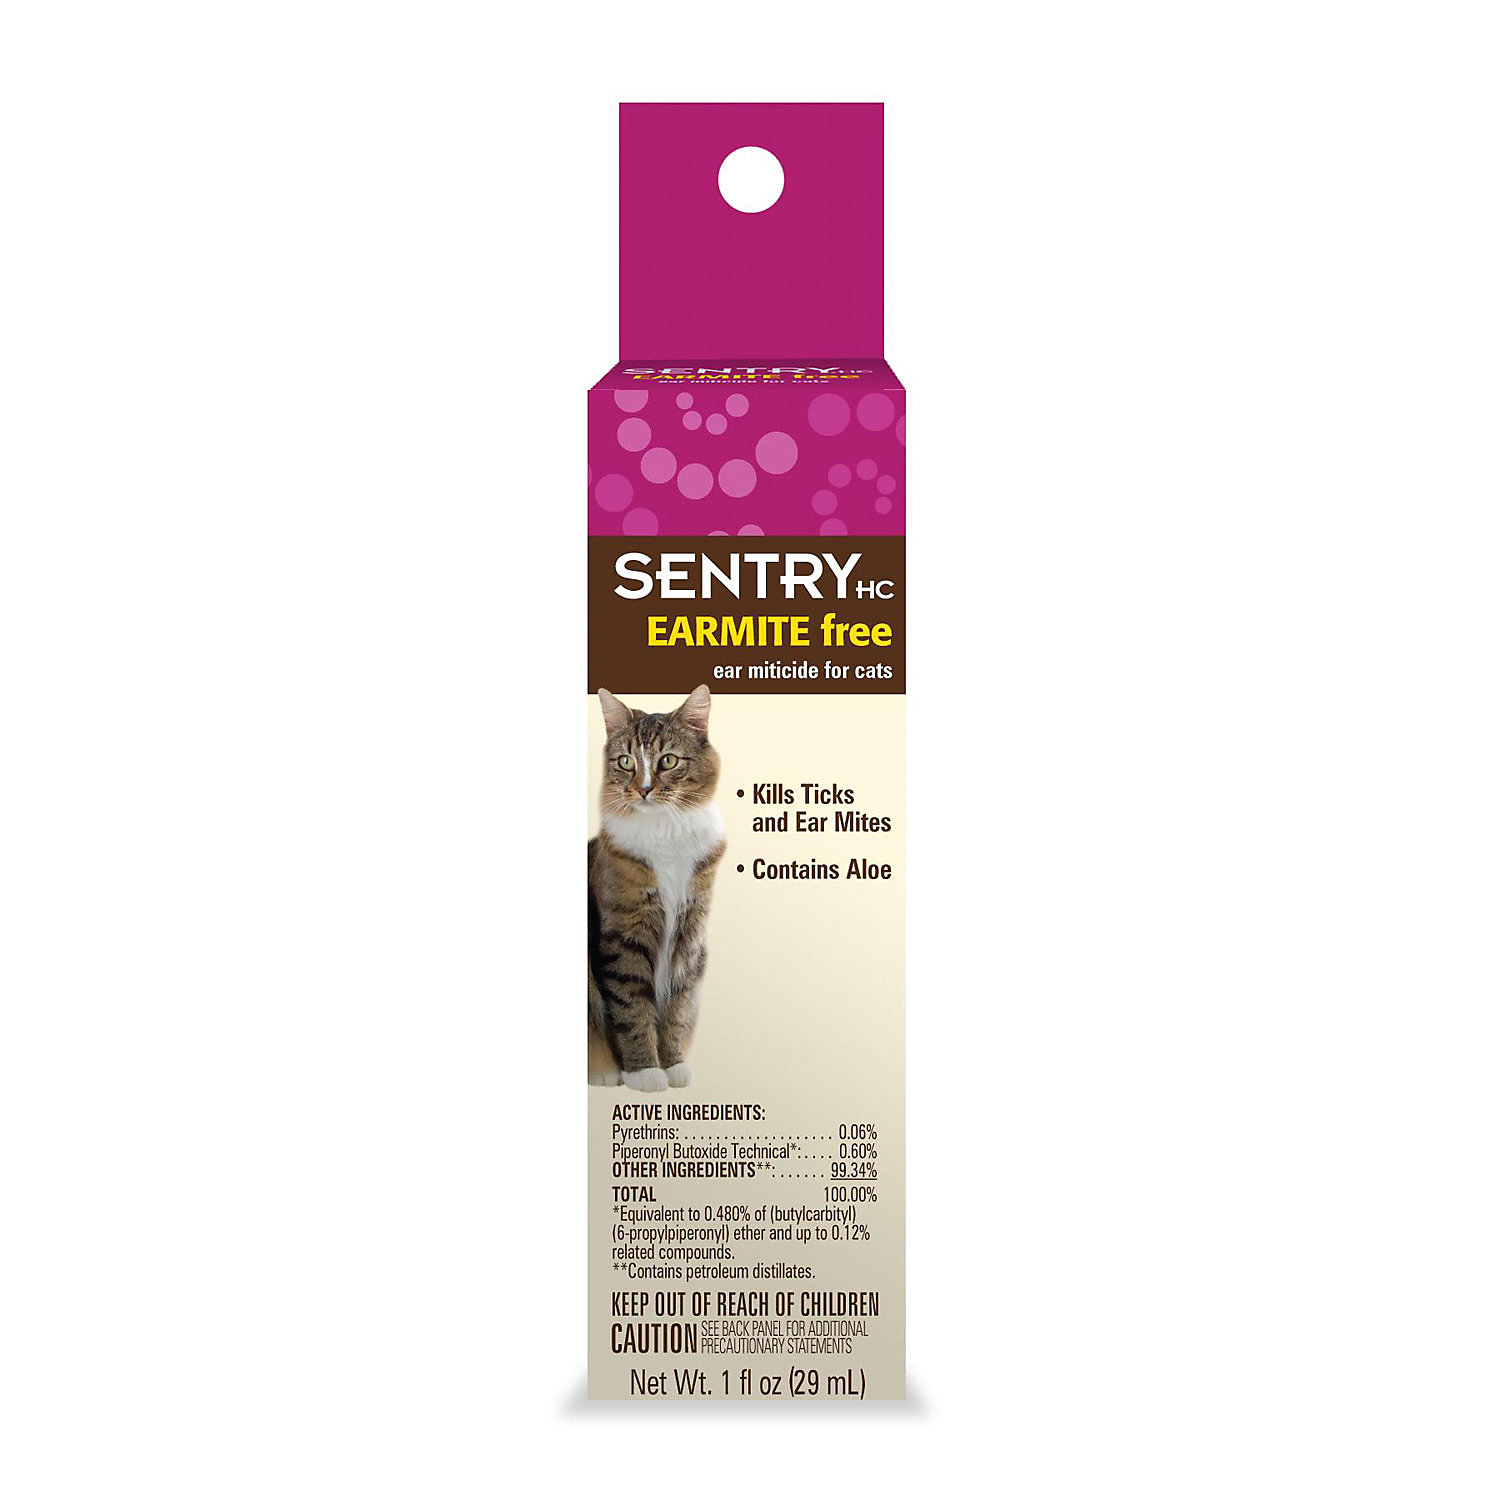 Sentry Earmite Free Ear Miticide For Cats 1 Oz.